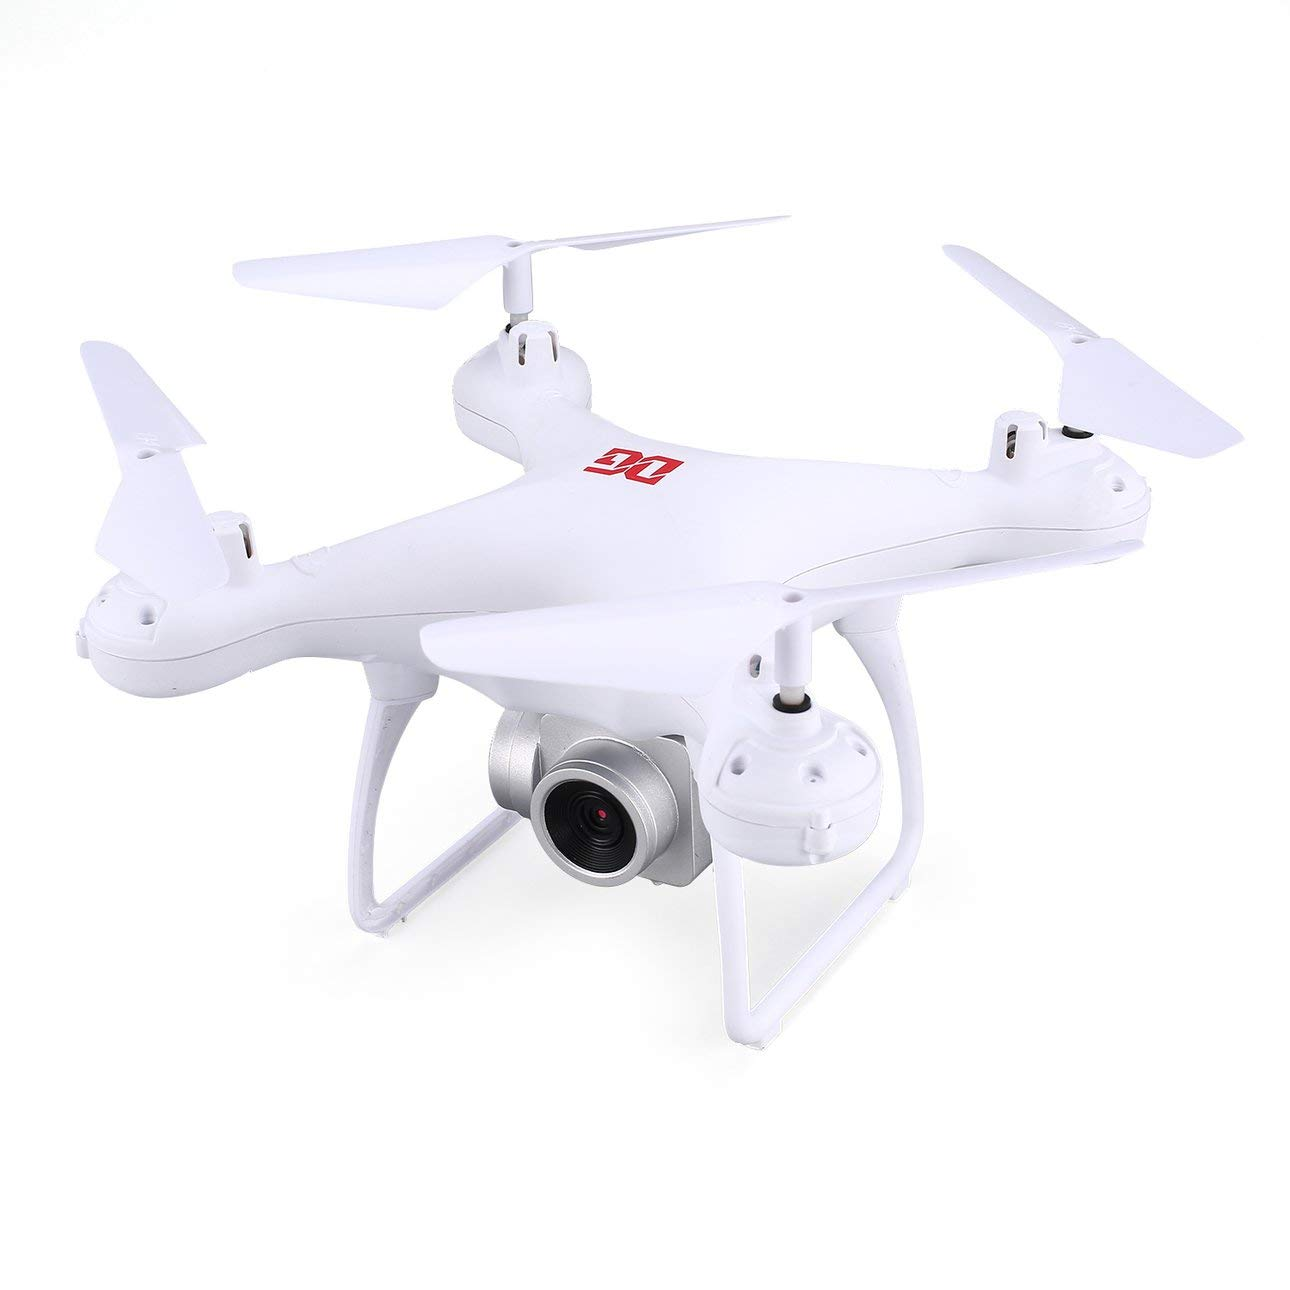 Ballylelly RC Drone con CameraXG183 2.4G RC Selfie Drone FPV Quadcopter con Fotocamera 0.3MP Real -Time Altitude Hold LED Flash Word Puntelli programmabili